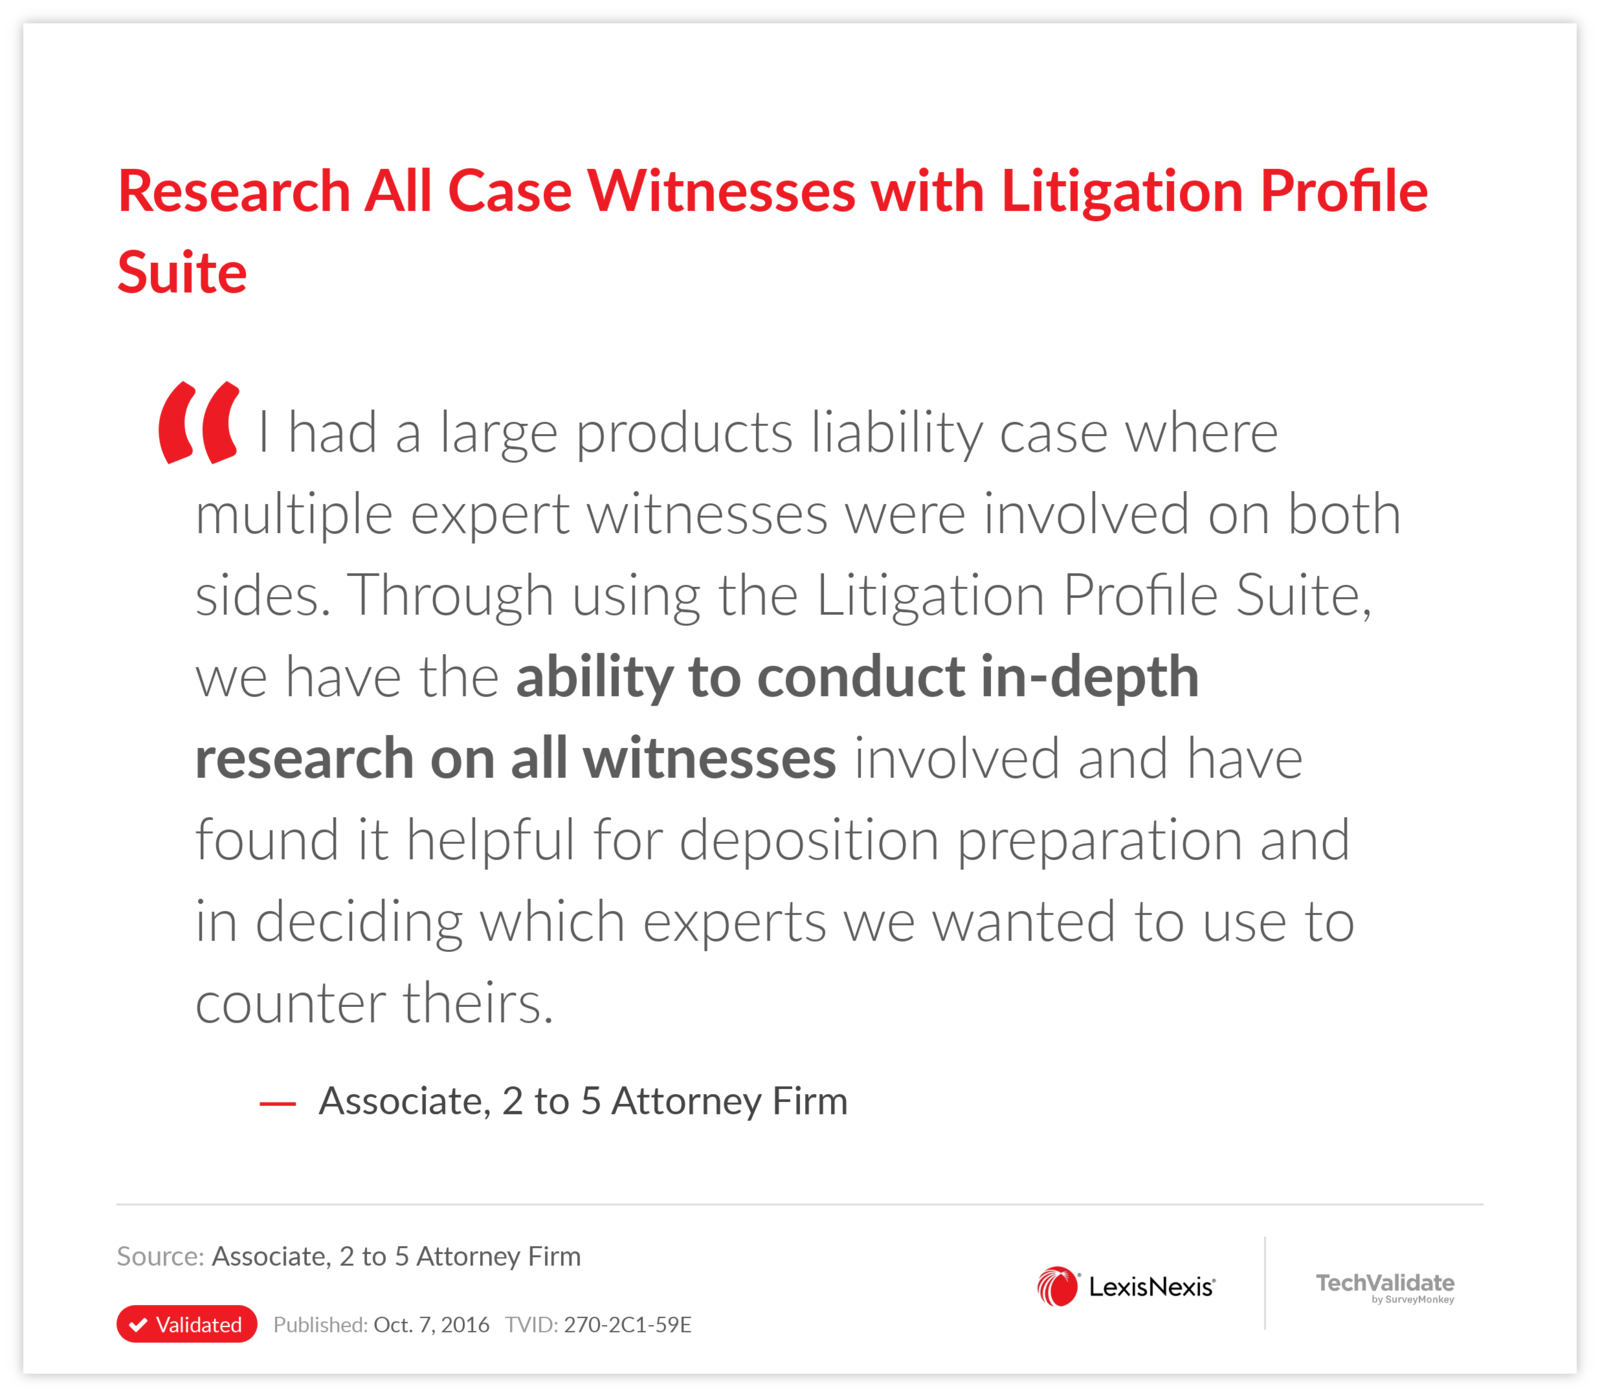 Research All Case Witnesses with Litigation Profile Suite